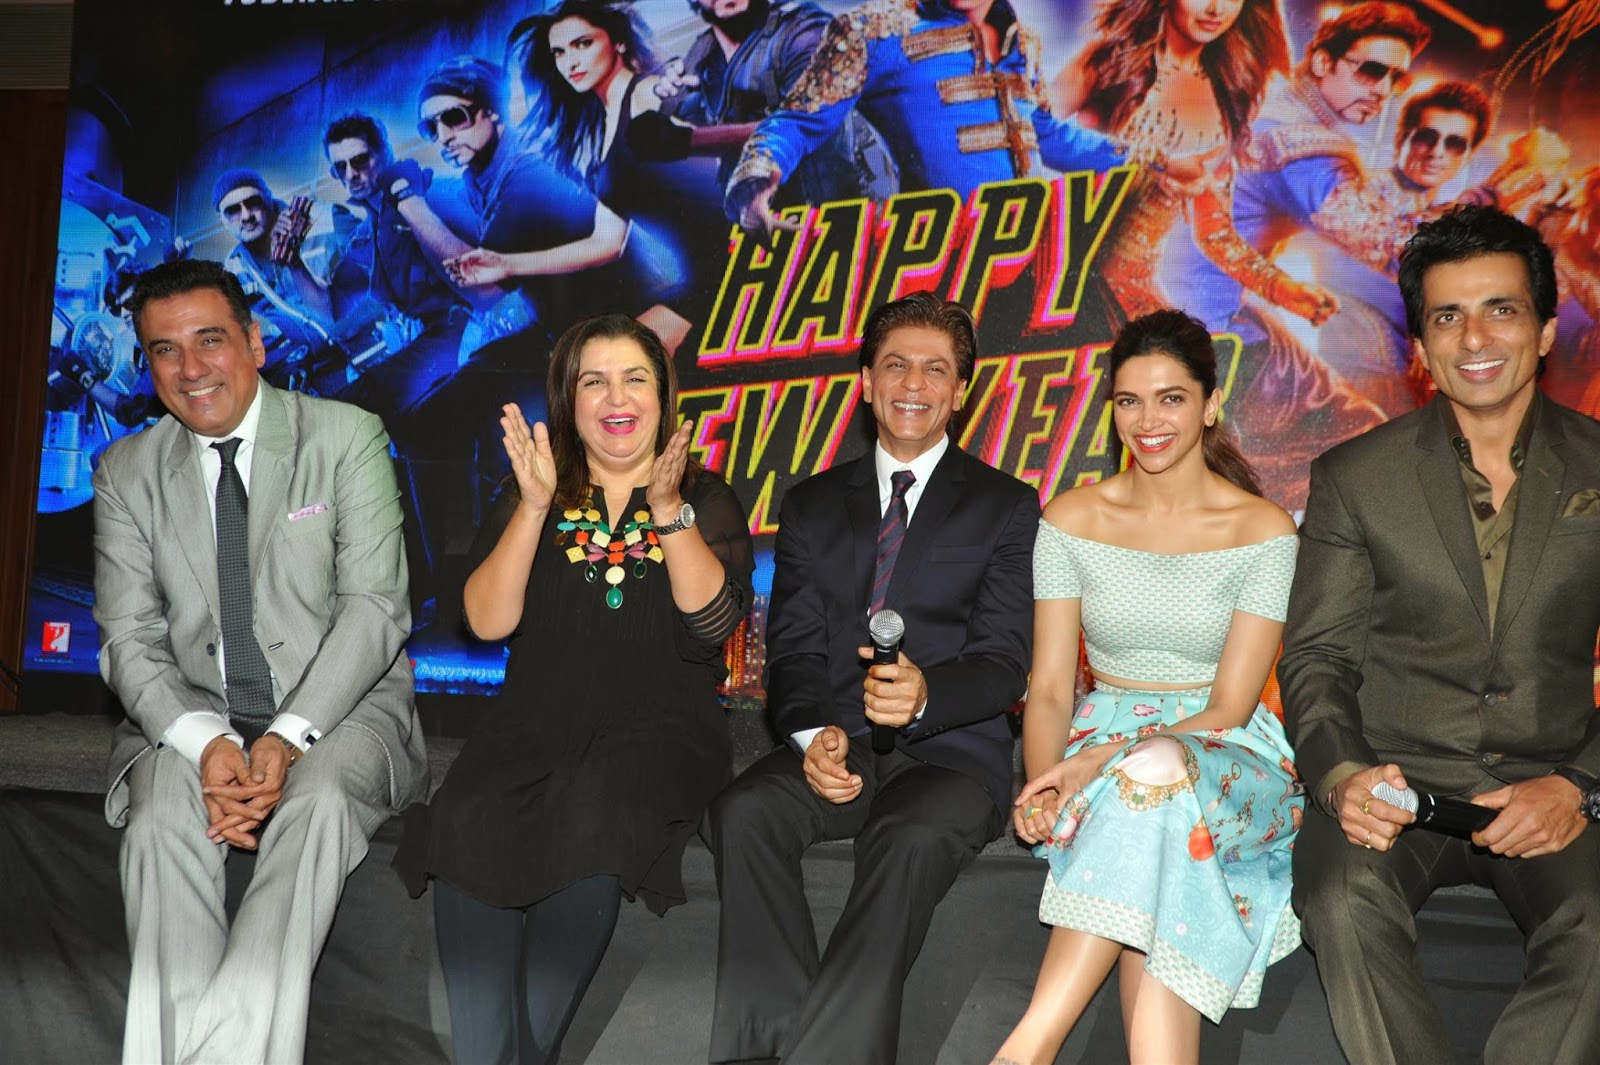 Deepika Padukone at Sharabi music video Launch in Mumbai from movie Happy new Year With Sharukh Khan